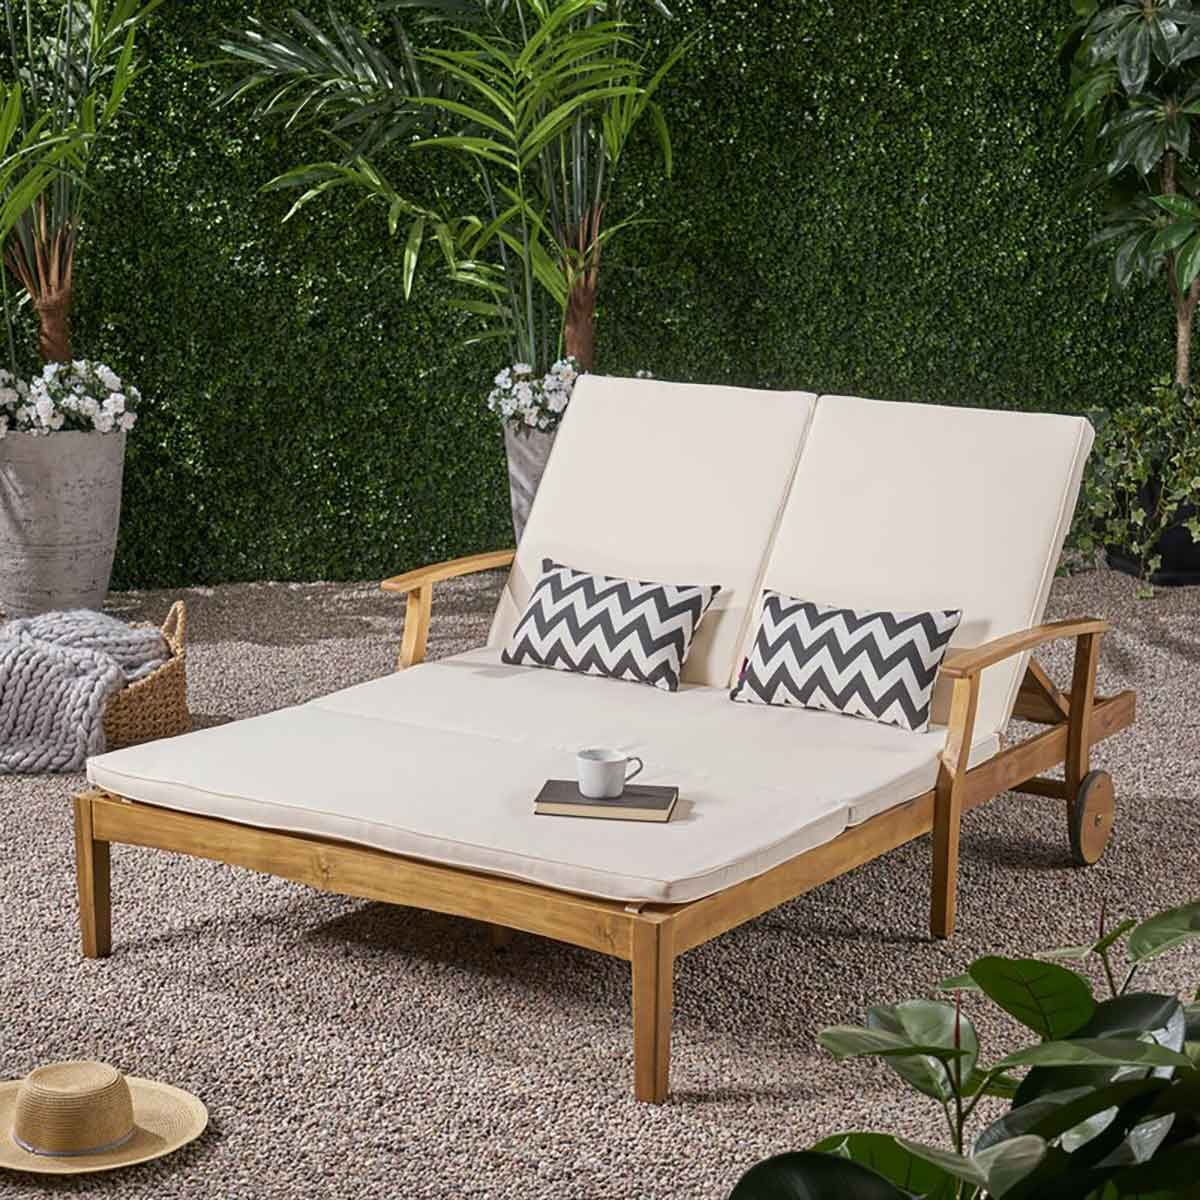 Double lounger